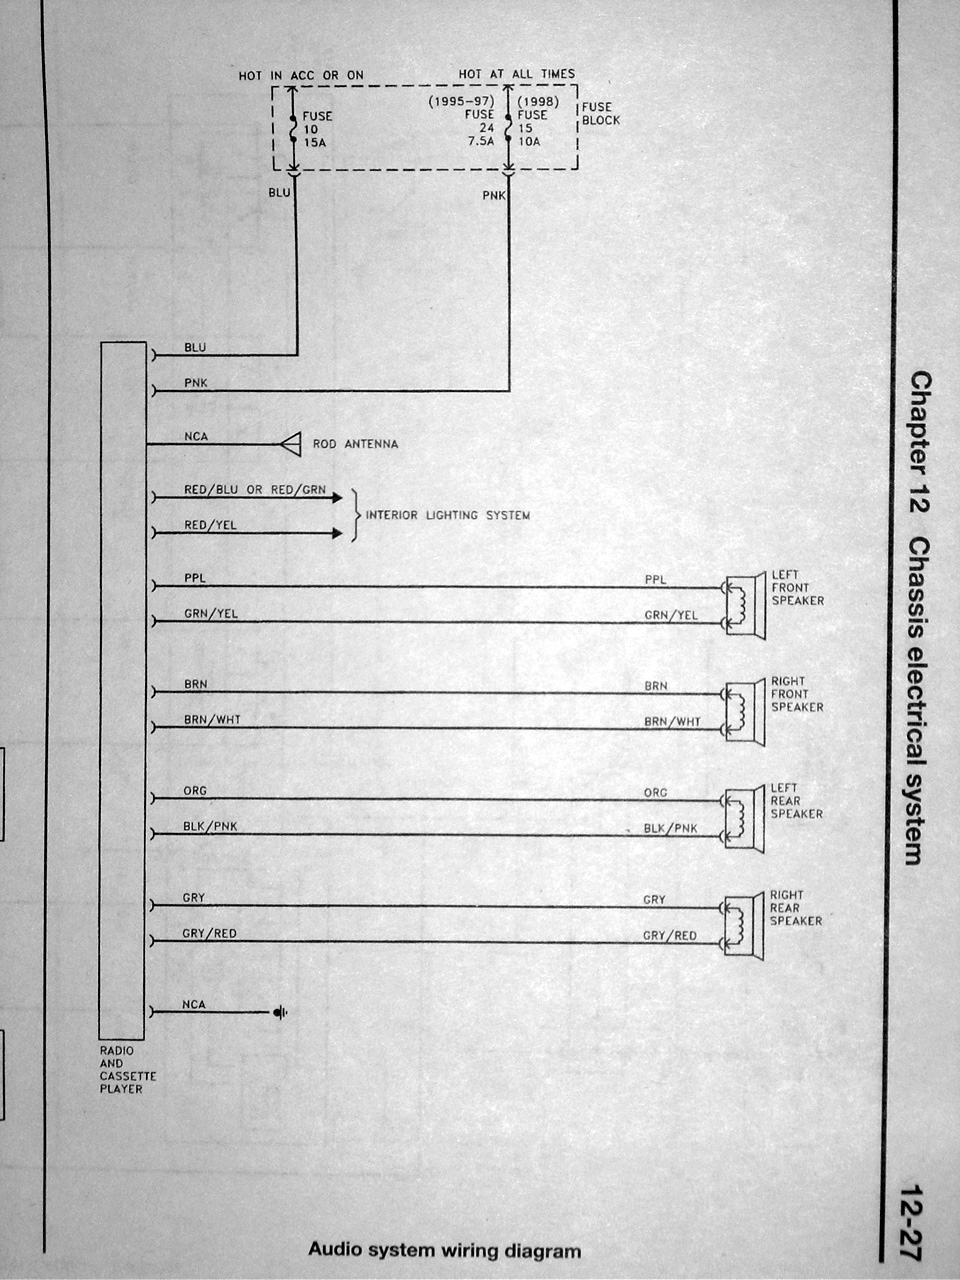 Wiring diagram thread useful info nissan forum asfbconference2016 Images